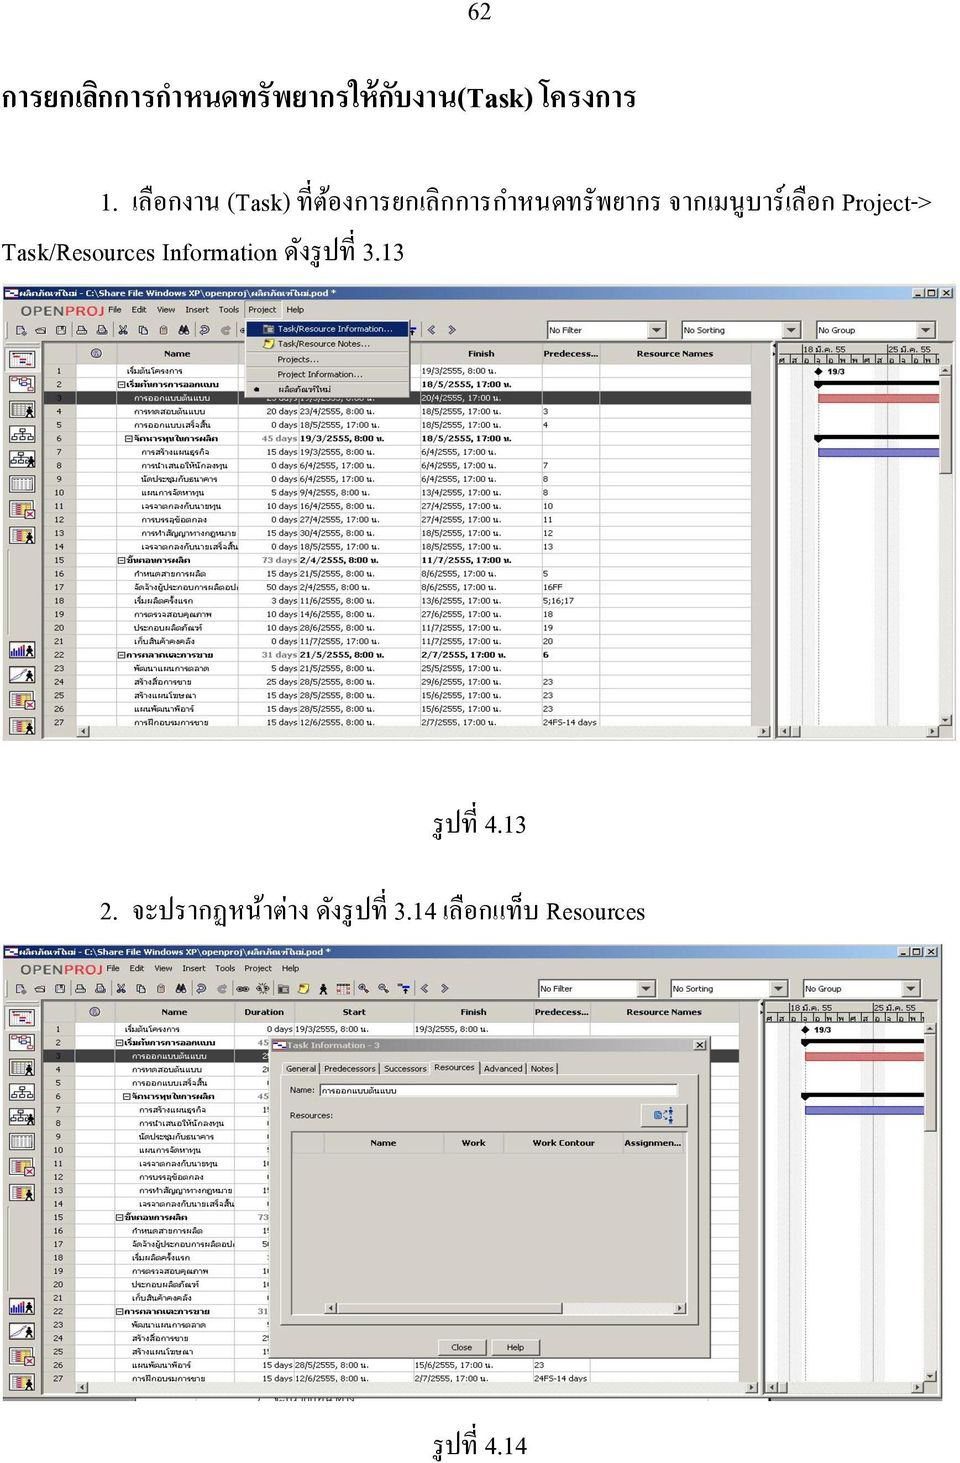 เล อก Project-> Task/Resources Information ด งร ปท 3.